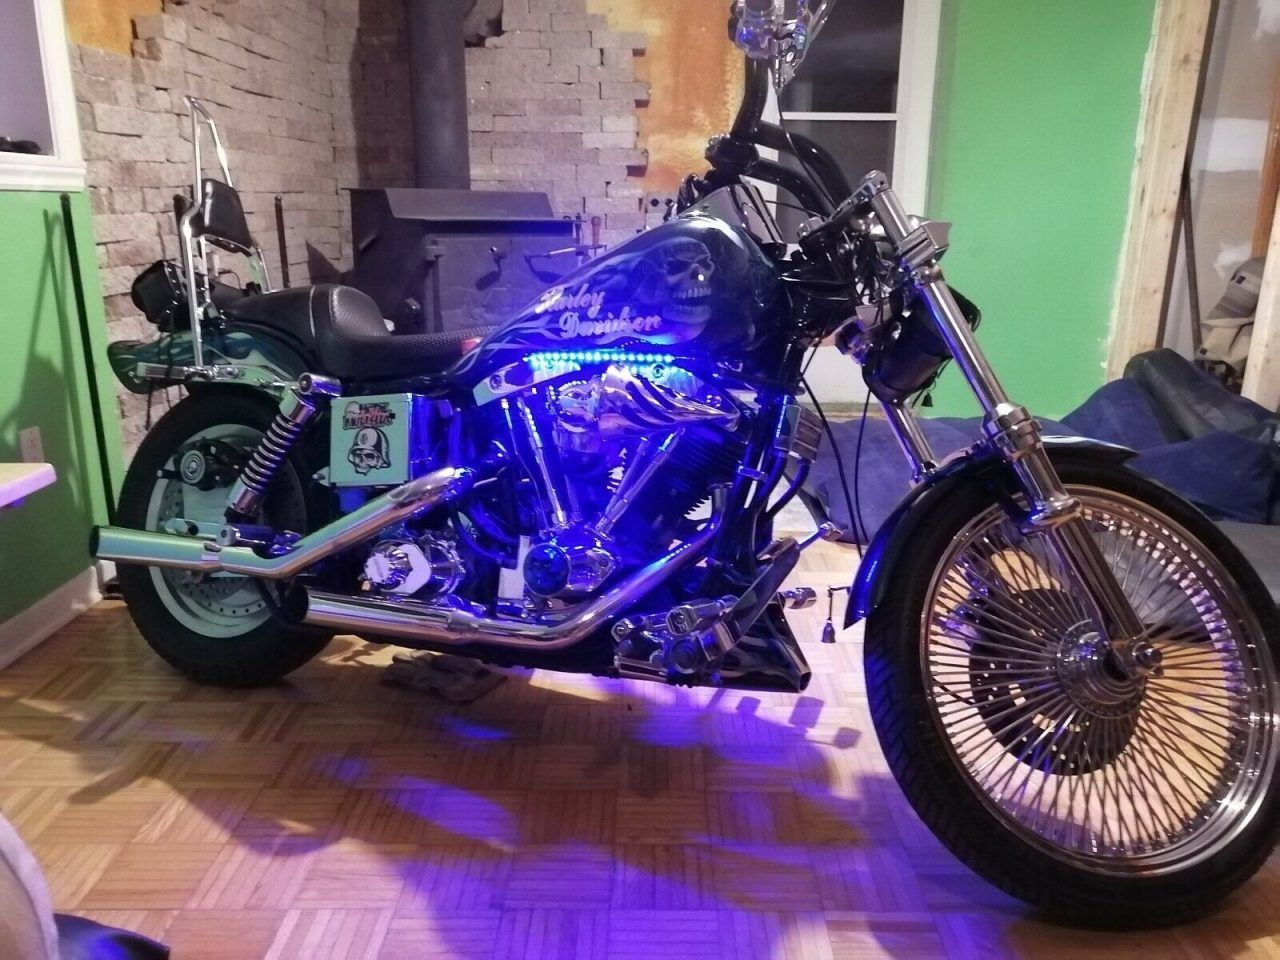 Motorcycles For Sale And Auction In Canada Gone Rogue Records In 2020 Motorcycles For Sale Motorcycle Auction